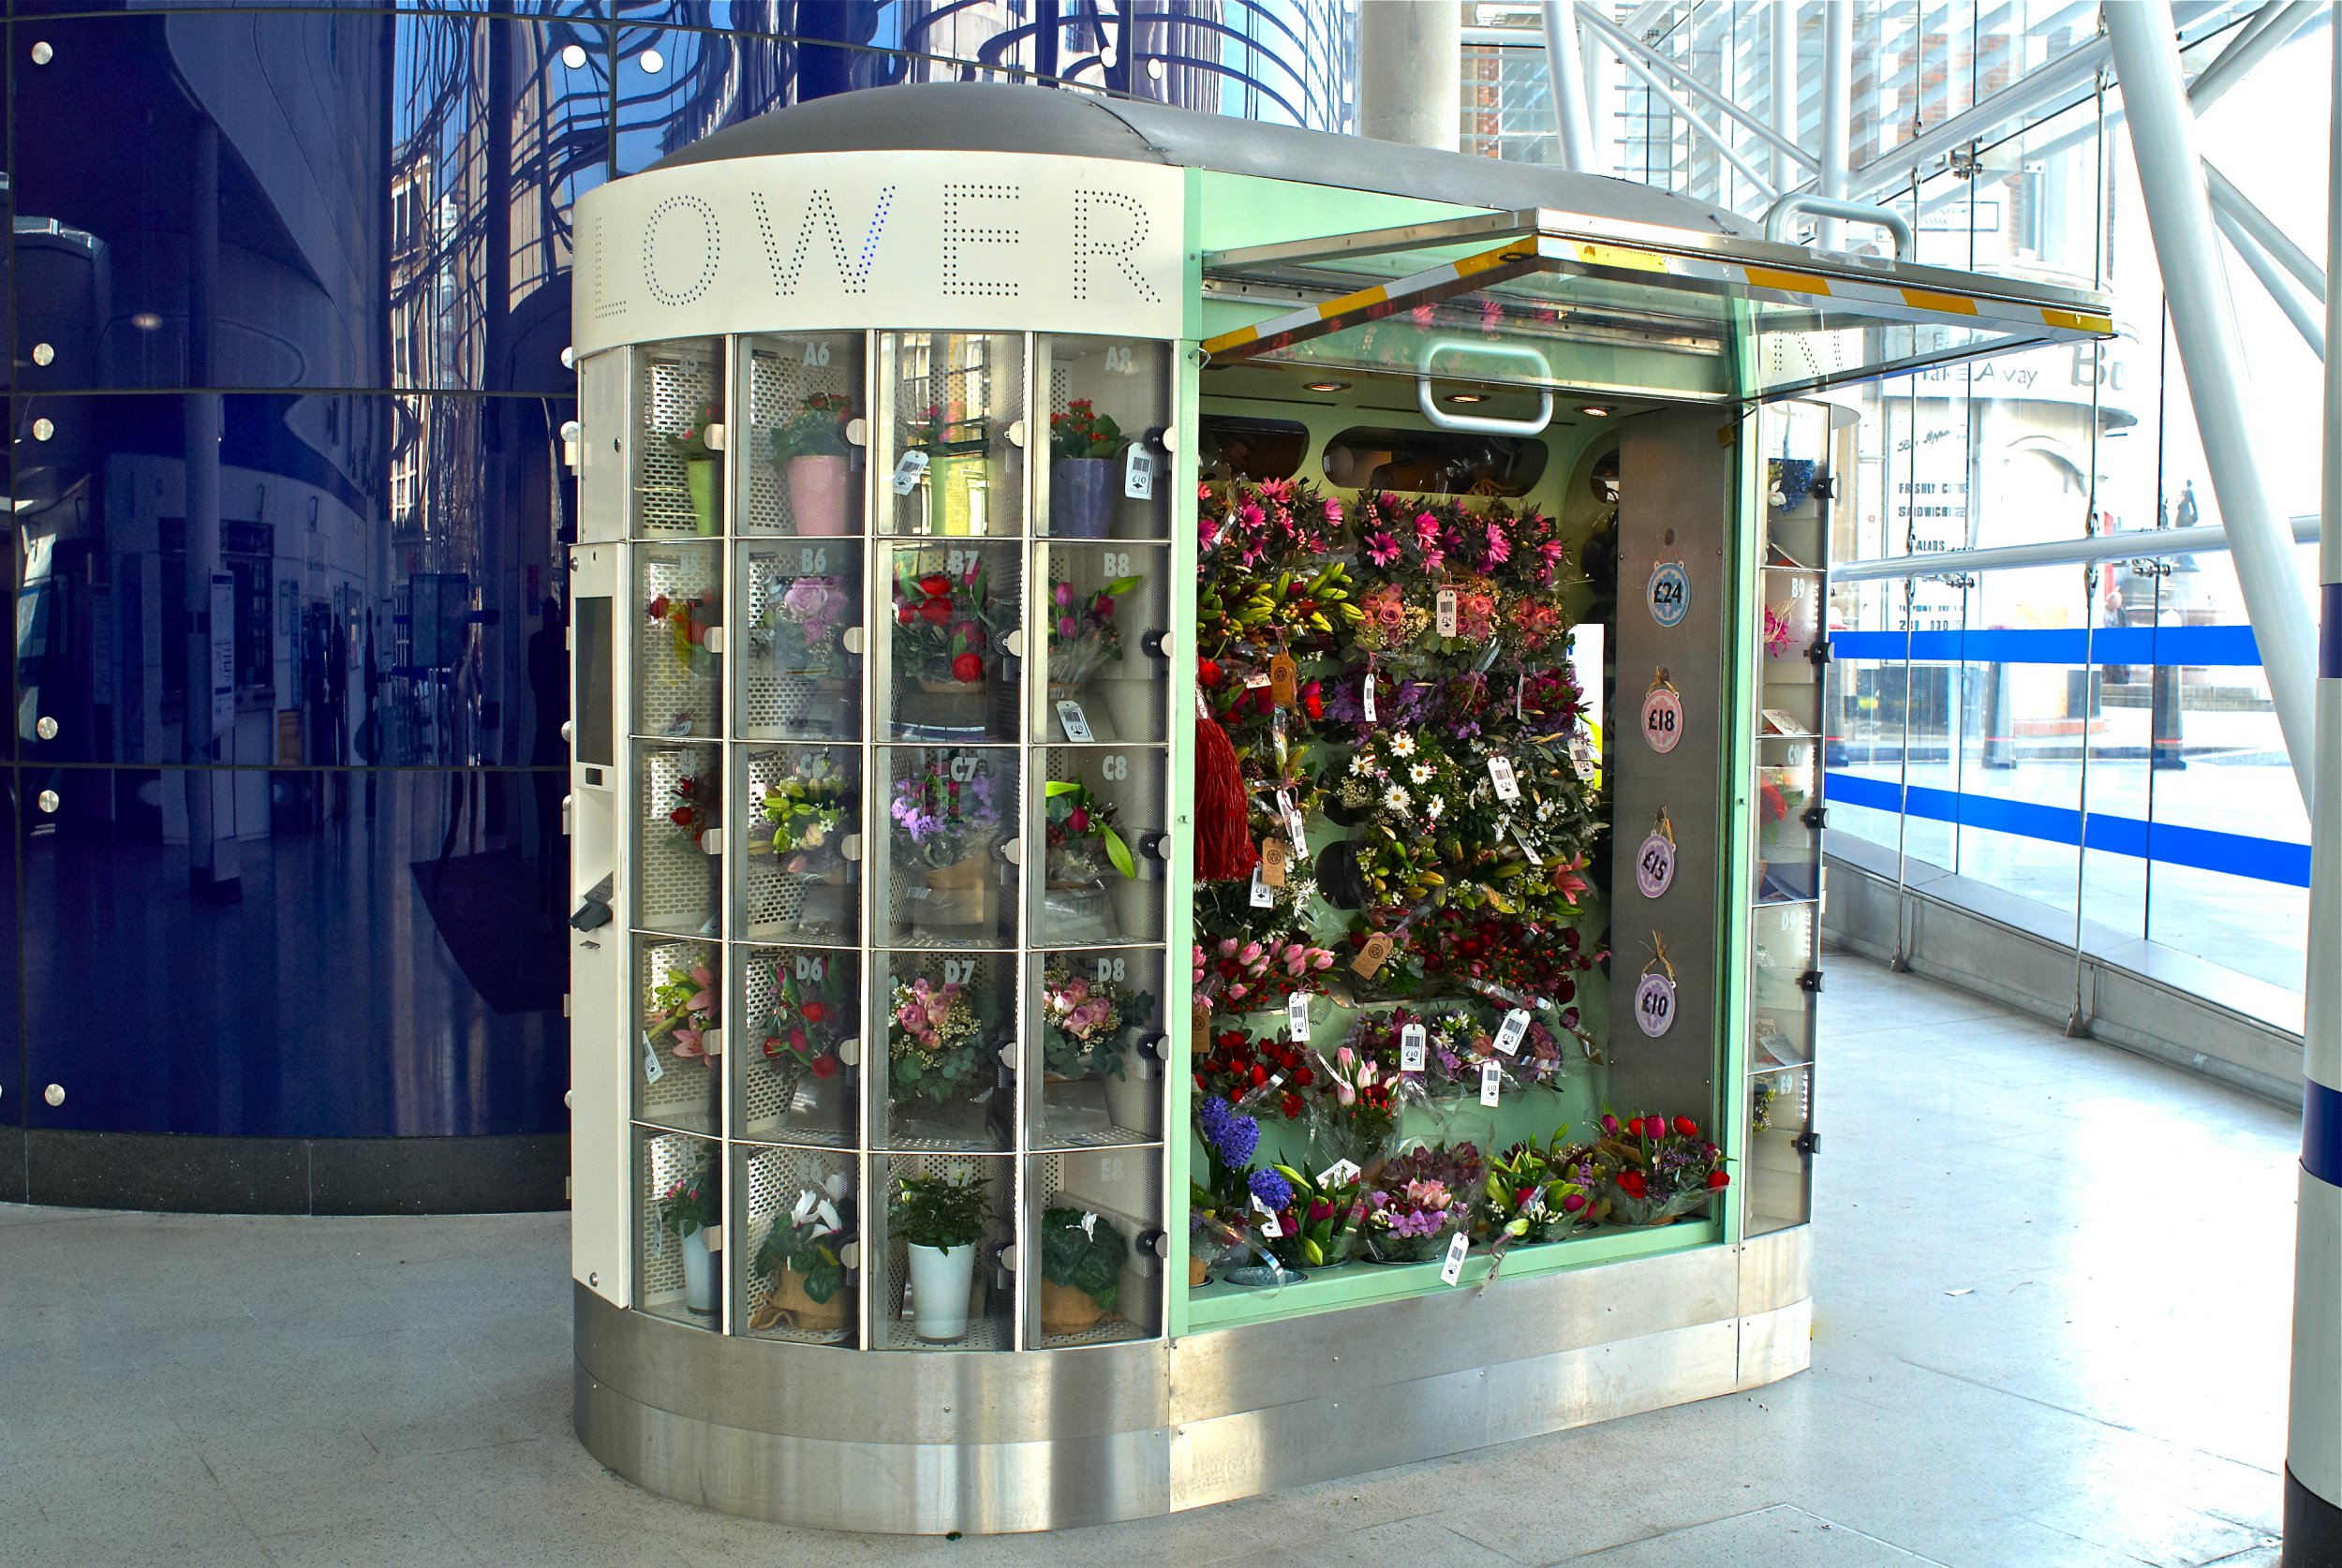 Vending machine in Clapham lets you get fresh flowers 24/7